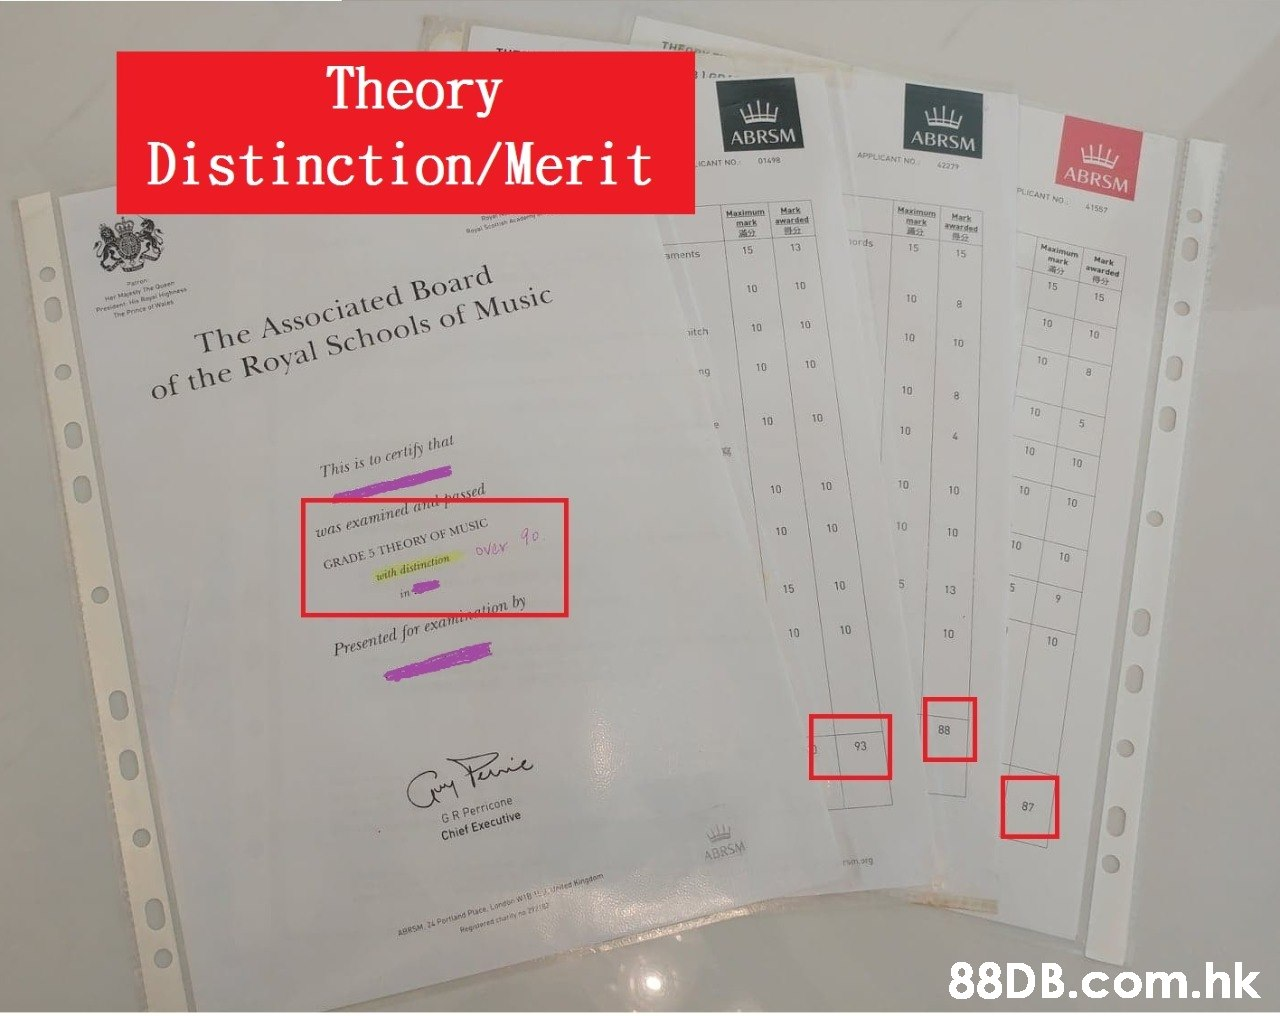 THE - Theory ABRSM ABRSM Distinction/Merit APPLICANT NOo 01498 ICANT NO 42279 ABRSM PLICANT Nn 41557 Maximum Mark warded Mazimum mark Mark mark wwarded Reyal Sesn ords 15 Maximum 13 15 15 aments mark Mark awarded er Maesy Ihe Quenn ant 4 Paren 10 15 Preeident Rayal ghne The Prince ofwe 10 15 10 10 10 10 itch 10 10 The Associated Board 10 10 10 10 8. ng of the Royal Schools of Music 10 8. 10 10 10 10 4. 10 10 This is to certify that 10 was examinedand passed over 10 10 10 TO 10 10 GRADE 5 THEORY OF MUSIC teith distinction 10 10 10 10 10 10 10 15 13 in 10 10 10 10 Presented for examination by 88 93 87 GR Perricone Chief Executive ABRSM rm ang AORSM 24 Portiand Puce, Longore WIB UNes Kingdom Regaered chatiny ne 2 .hk  Text,Product,Font,Material property,